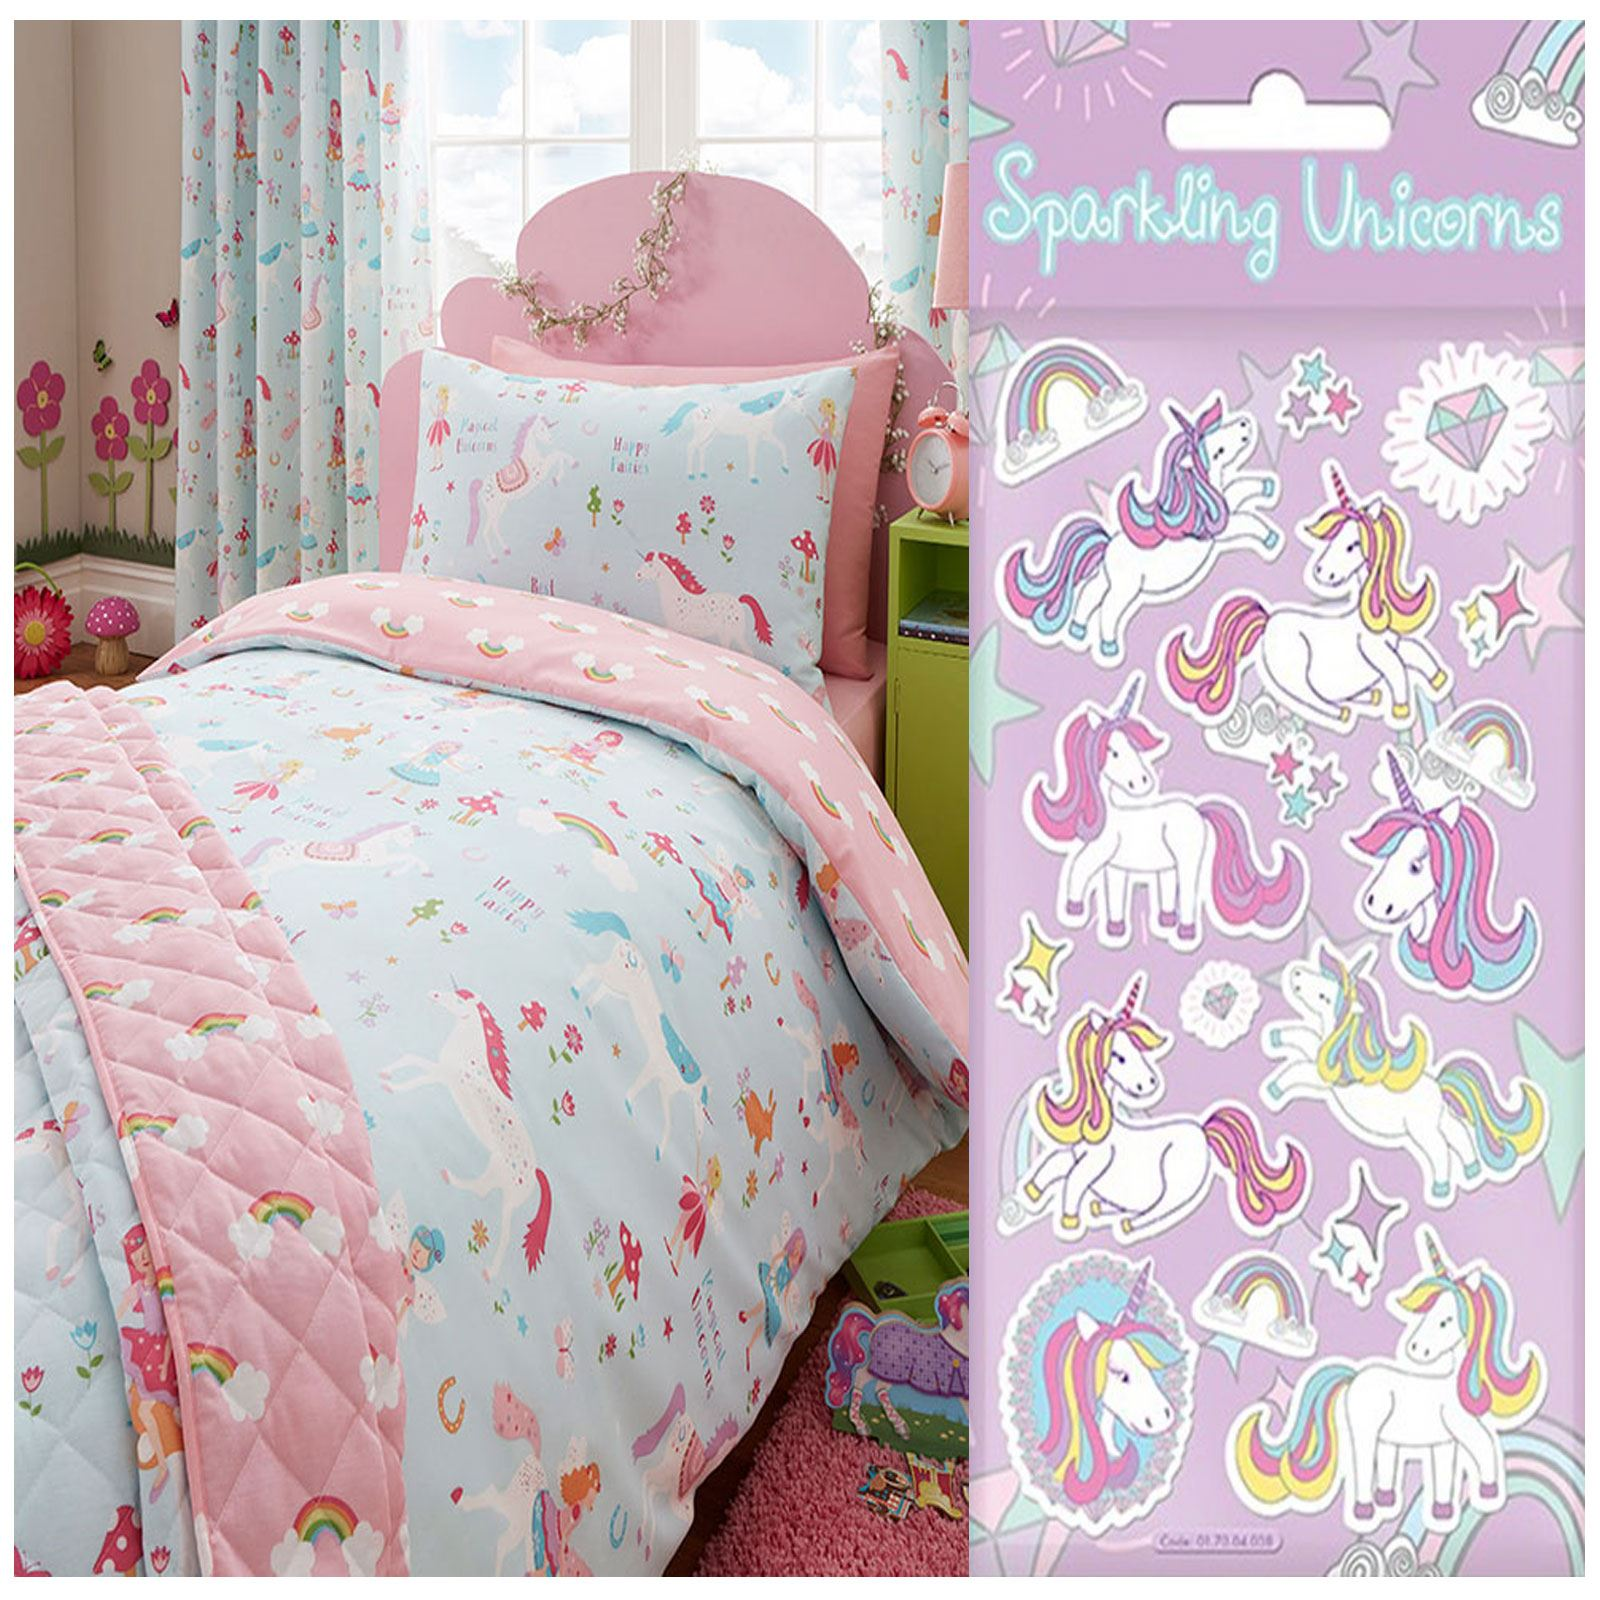 kids quilt adairs pin dreaming set ideas unicorn bed cover bedding